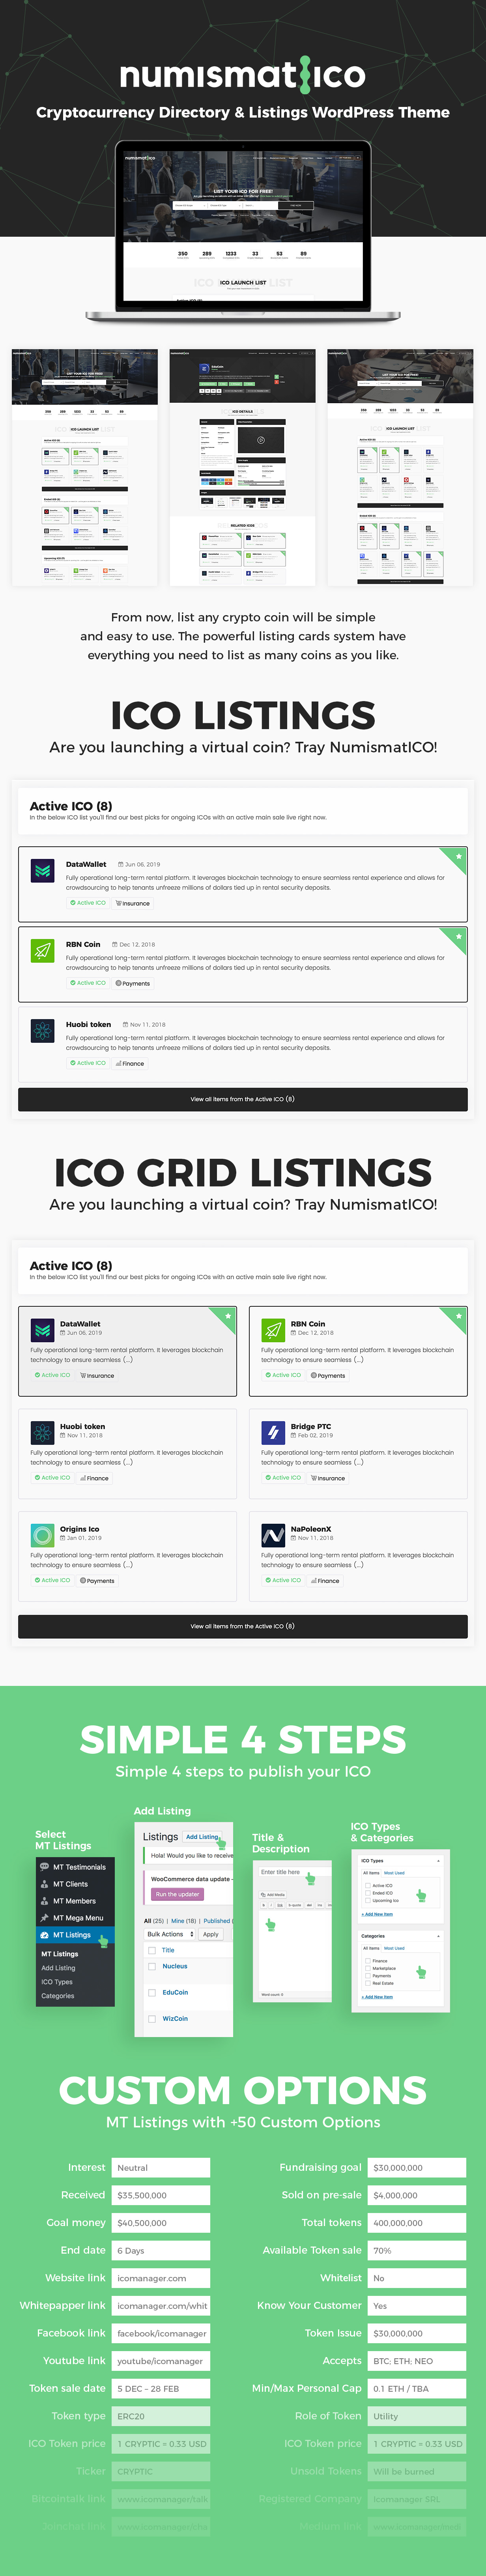 Numismatico - Cryptocurrency Directory & Listings WordPress Theme - 7